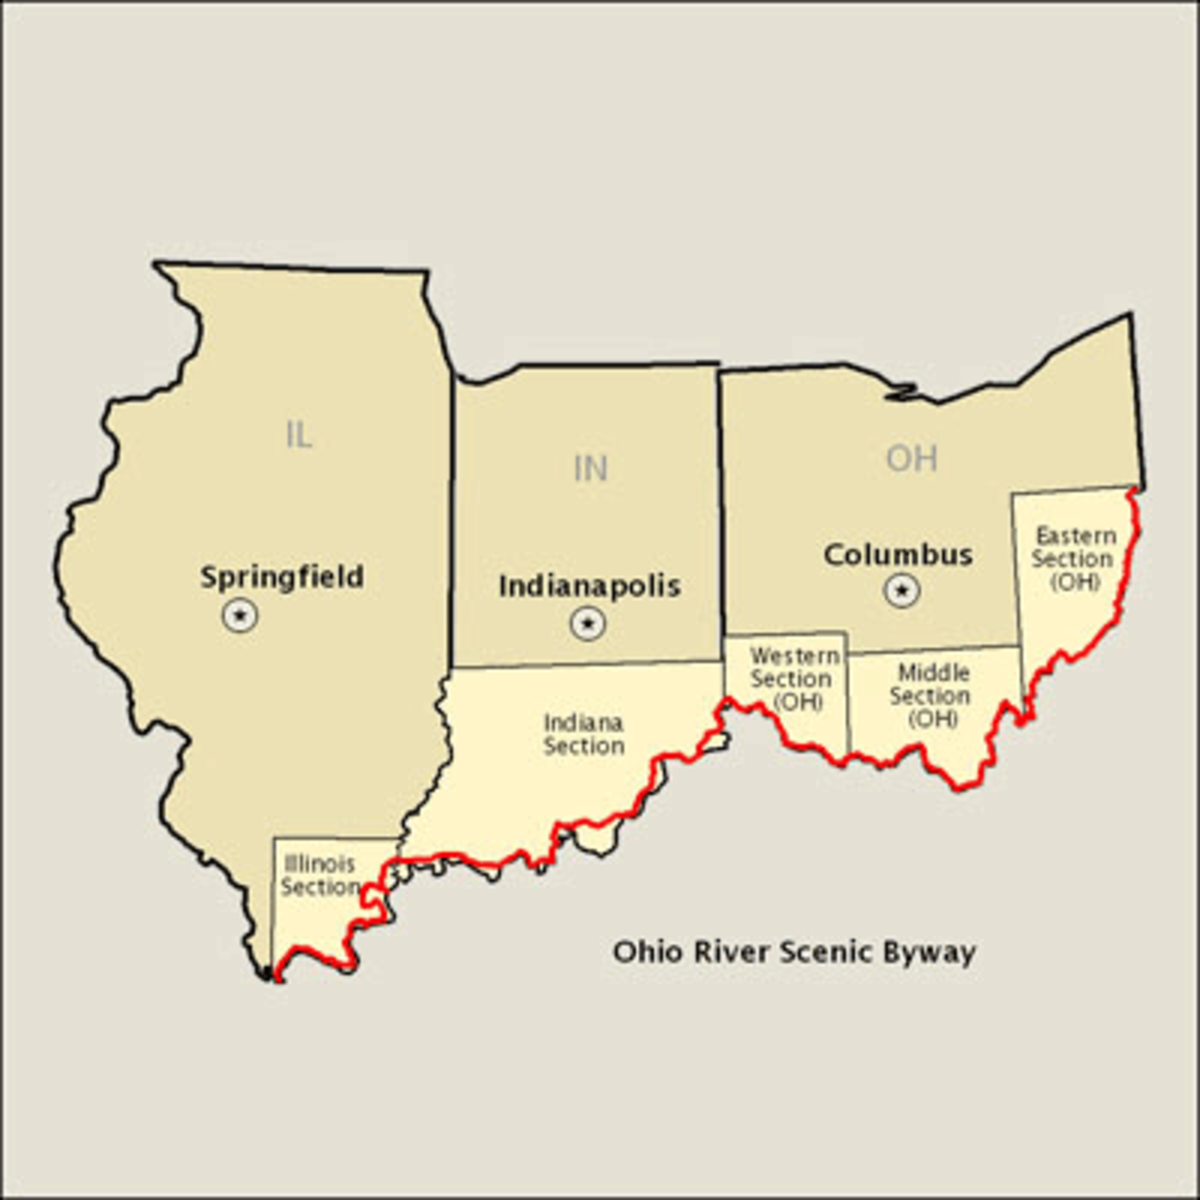 Ohio River Scenic Byway: Illinois, Indiana, Ohio